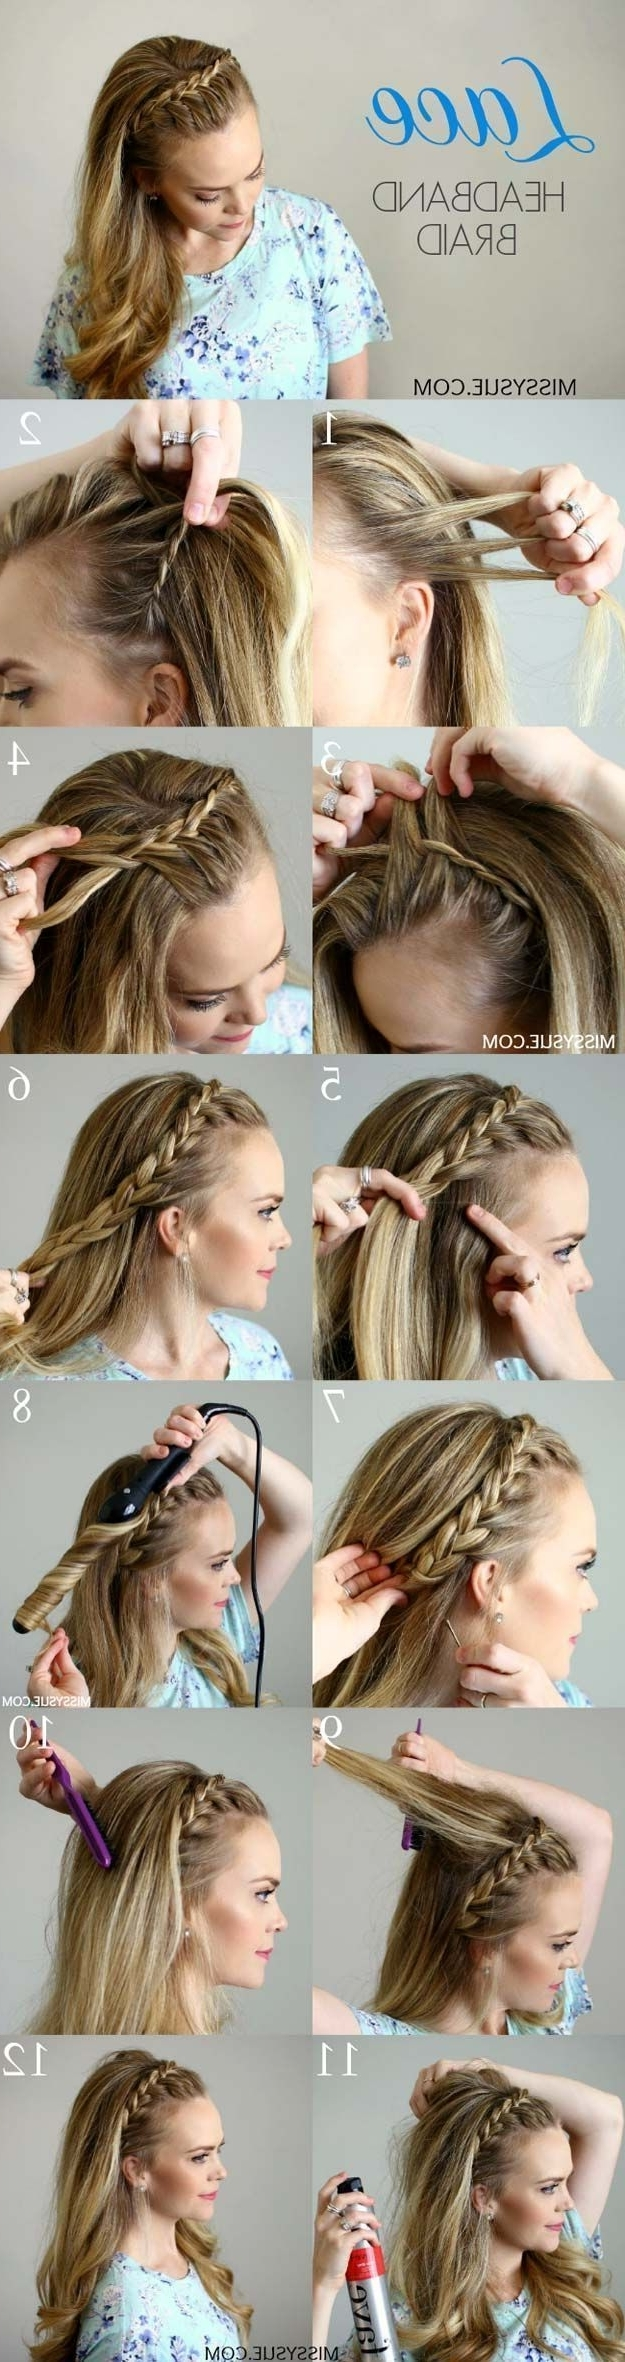 Best And Newest Two French Braid Hairstyles With Flower Regarding Best Hair Braiding Tutorials – Lace Headband Braid – Easy Step (View 7 of 15)